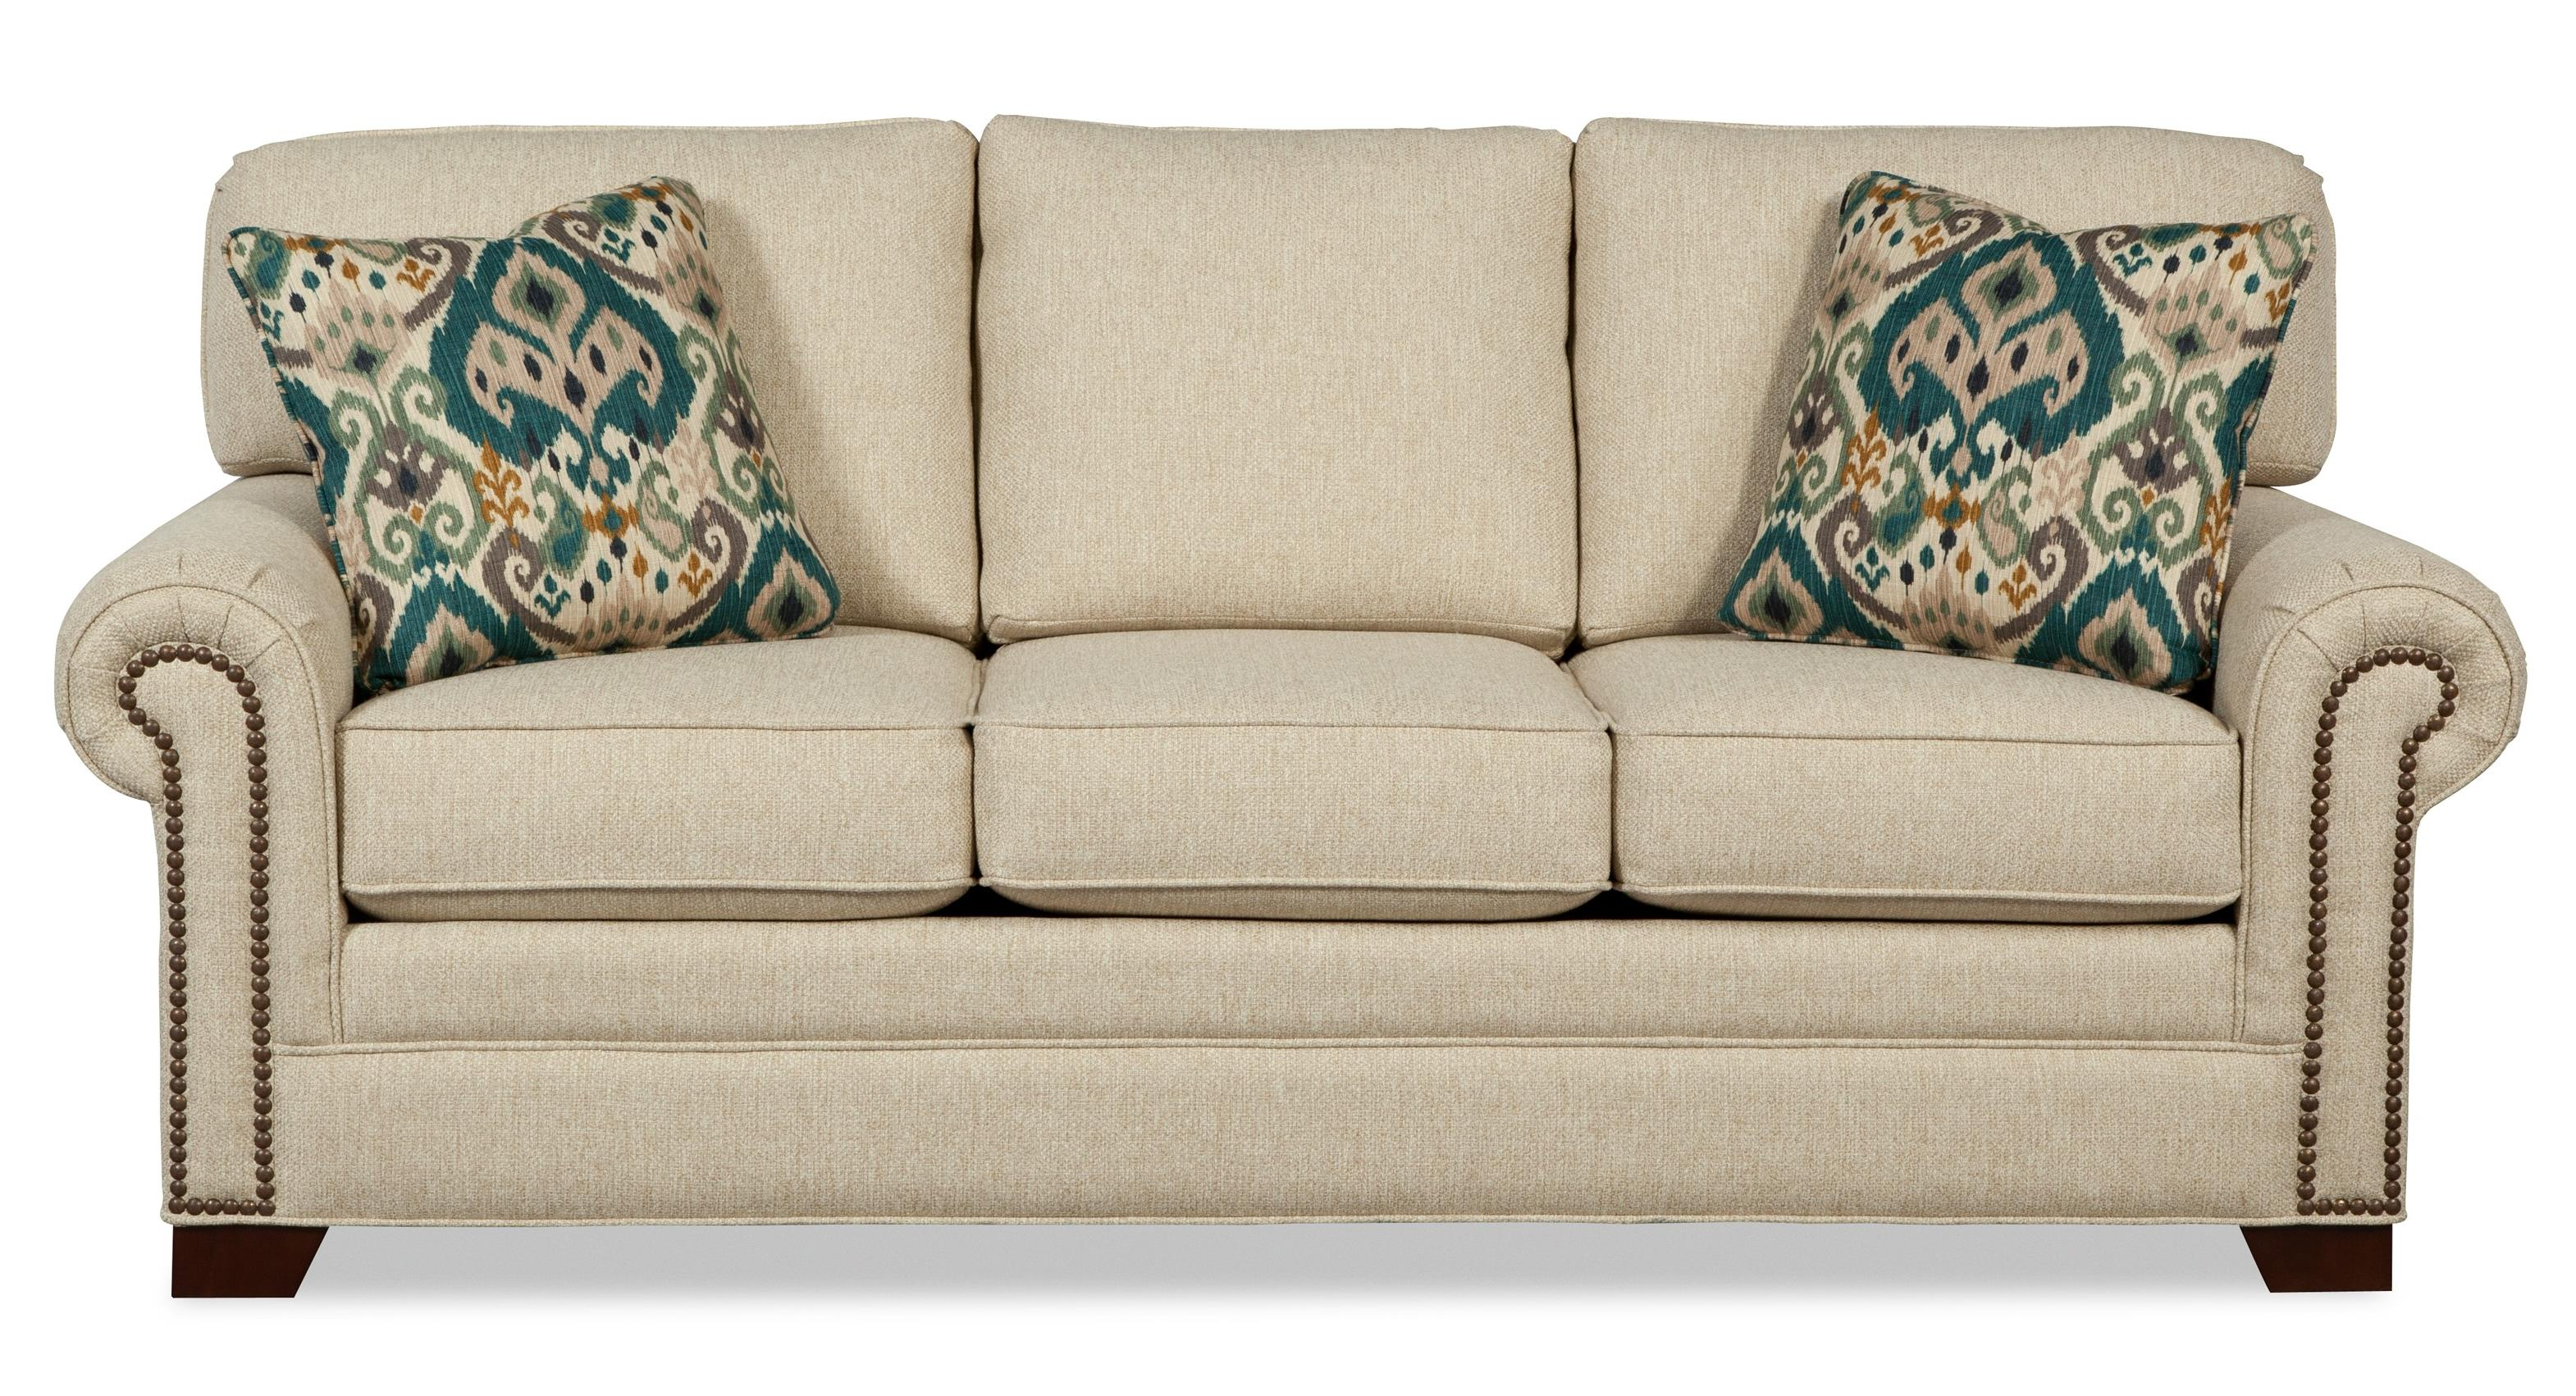 Craftmaster 7565 Queen Sleeper Sofa with Memory Foam Mattress - Item Number: 756550-98-BAHAMA-10